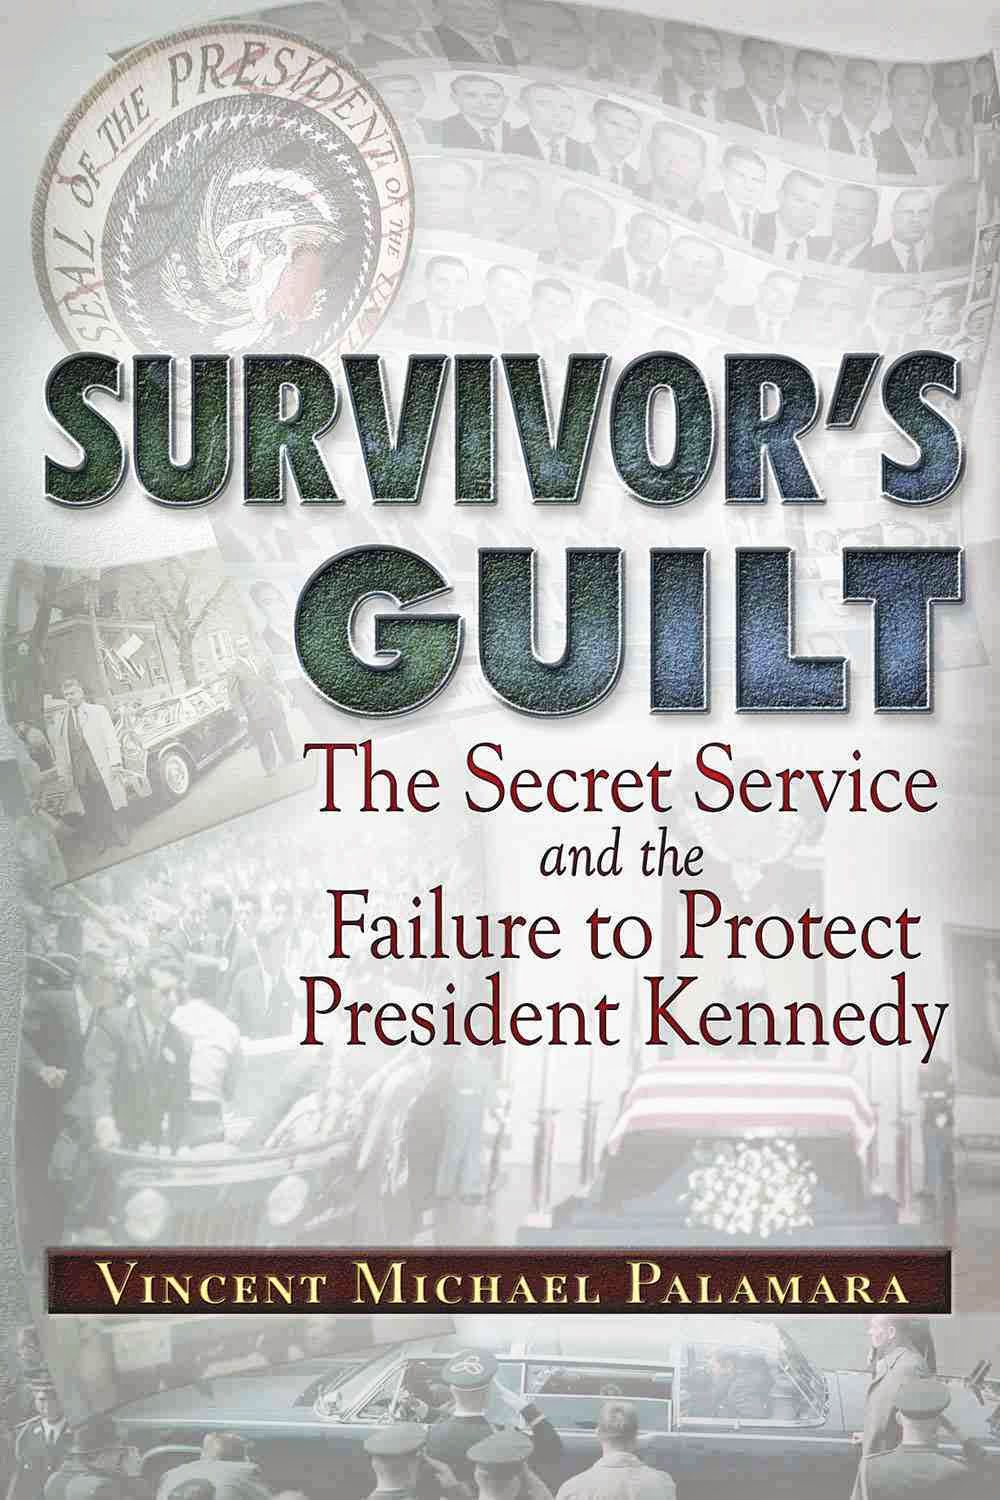 SURVIVOR'S GUILT COMING OCTOBER 2013